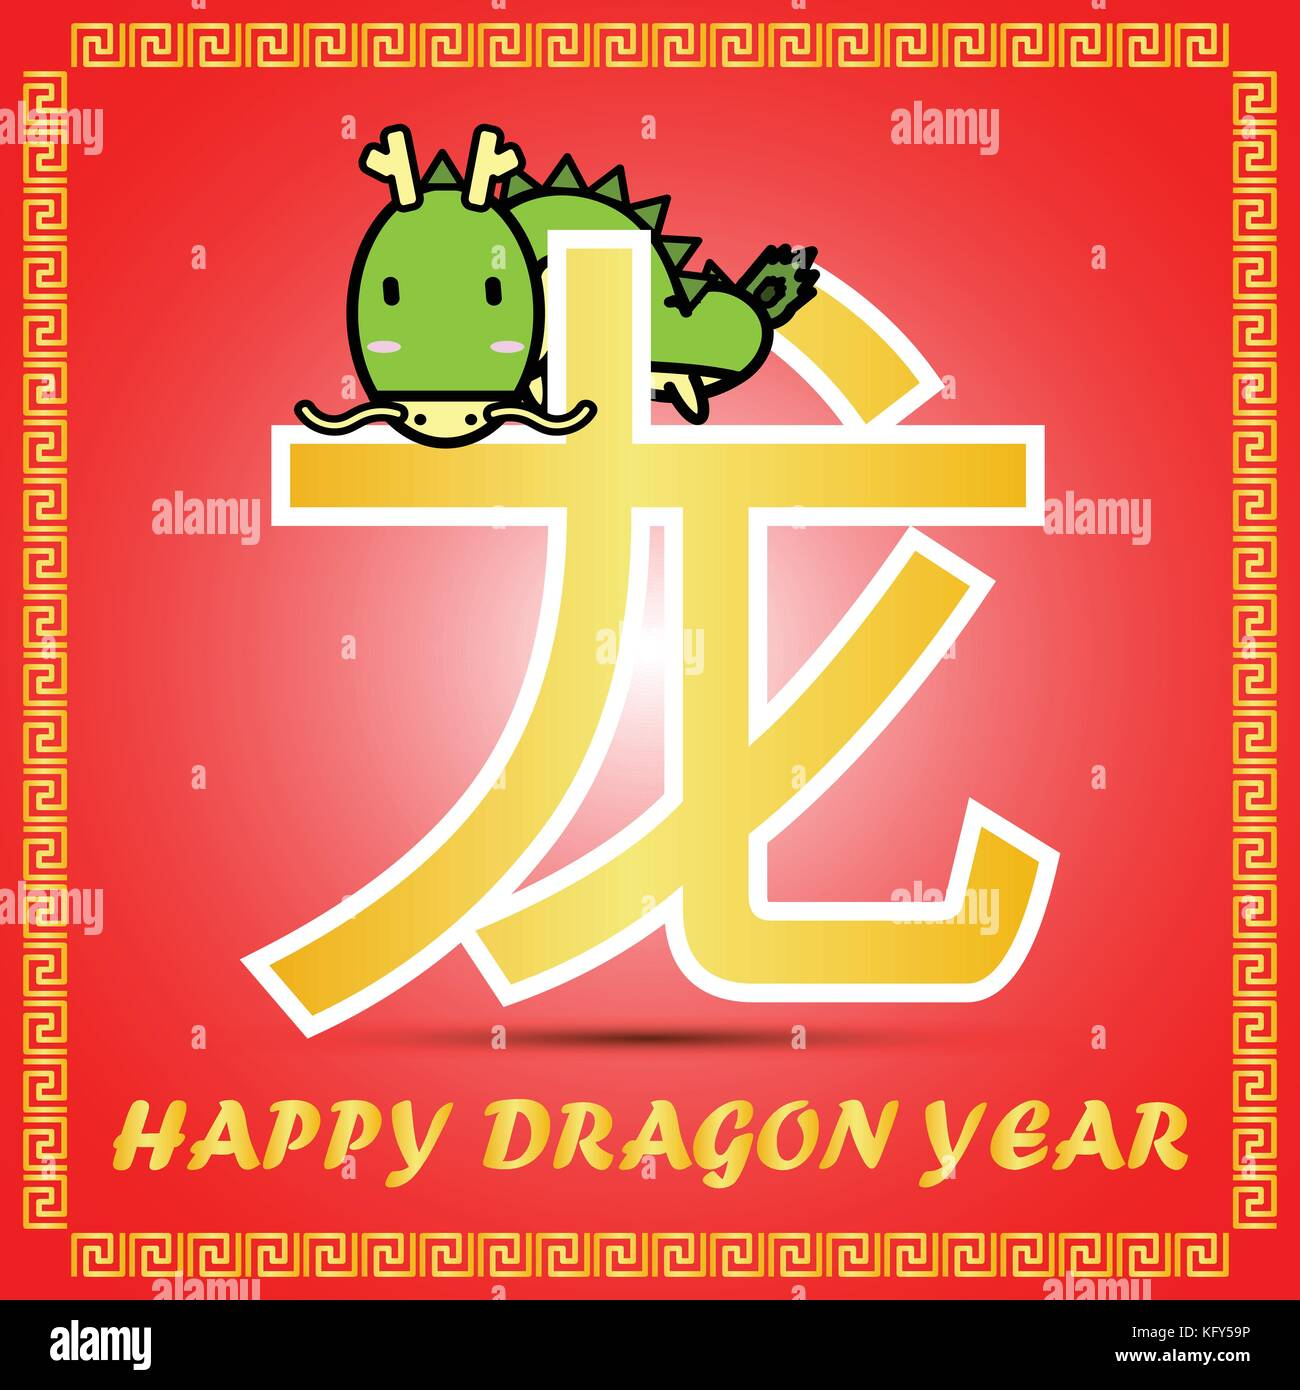 Big golden chinese word symbol icon of chinese zodiac calendar big golden chinese word symbol icon of chinese zodiac calendar with cute cartoon character for dragon year on red background biocorpaavc